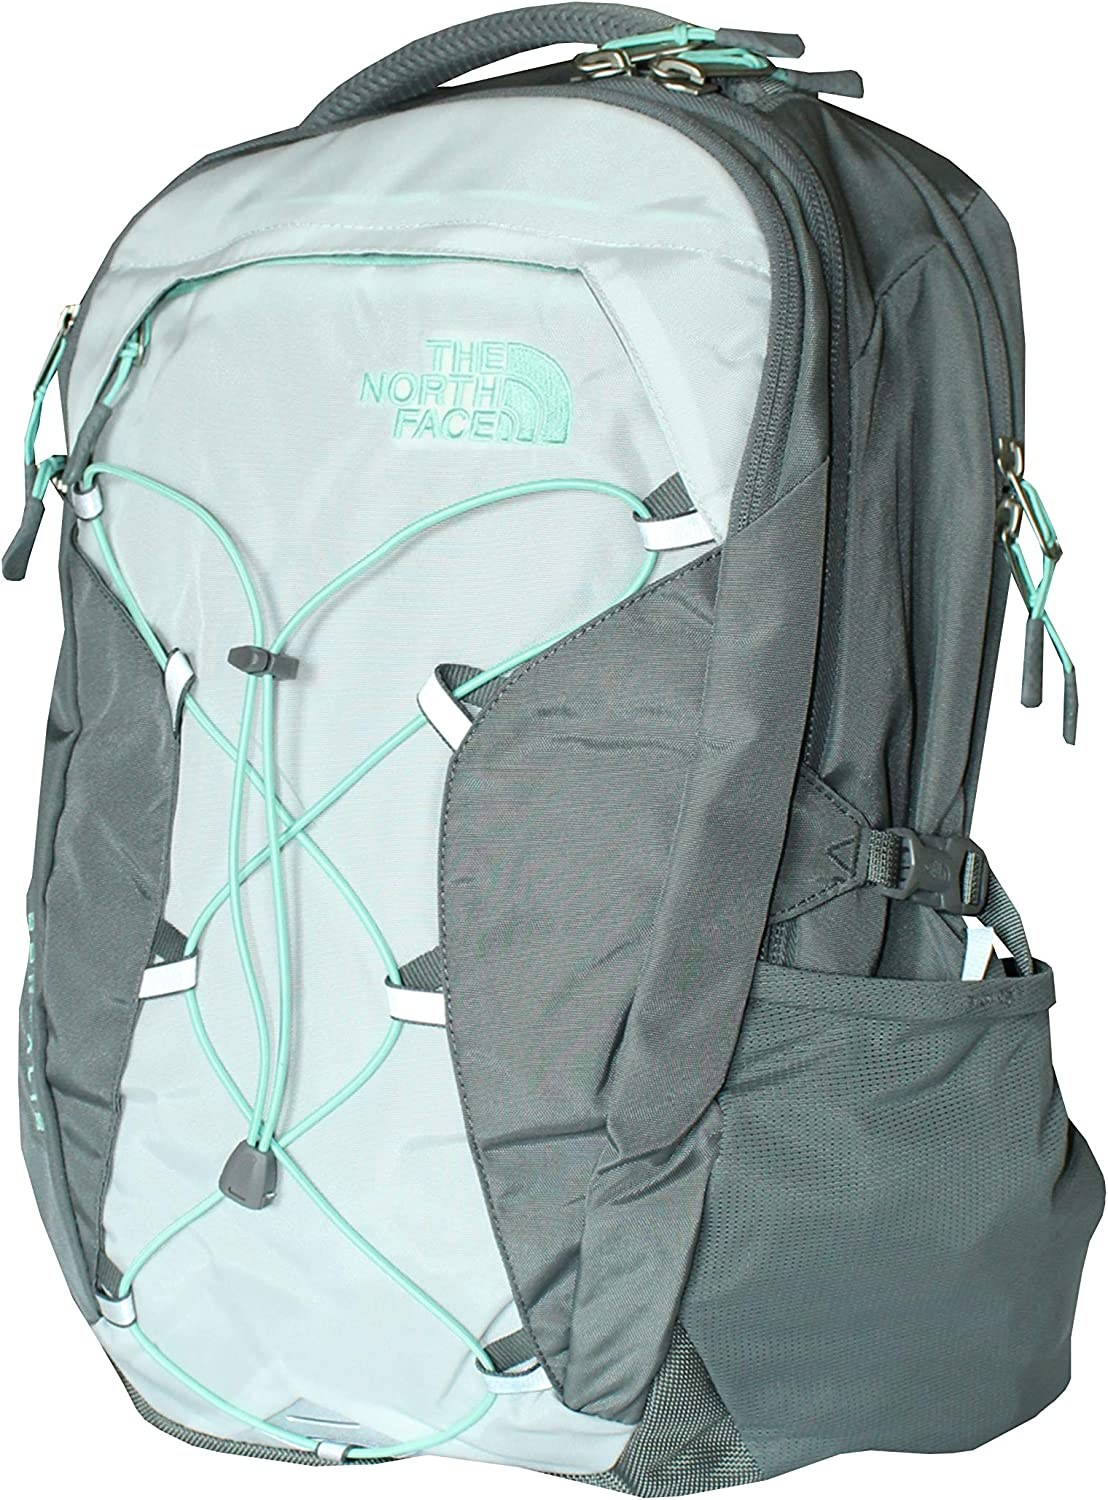 The North Face Women's Borealis Laptop School Backpack